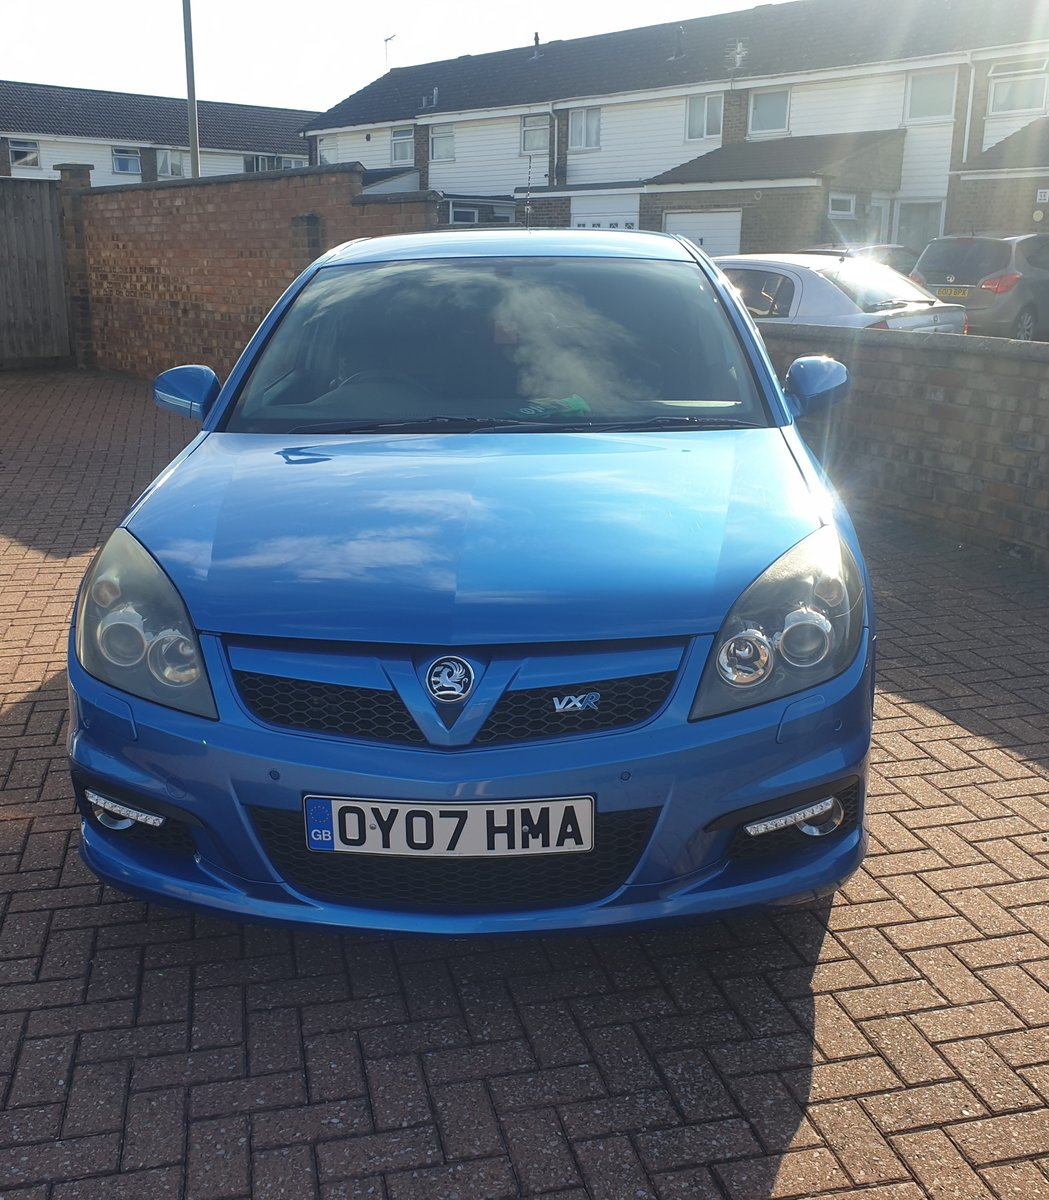 2007 Vauxhall Vectra VXR For Sale (picture 3 of 6)